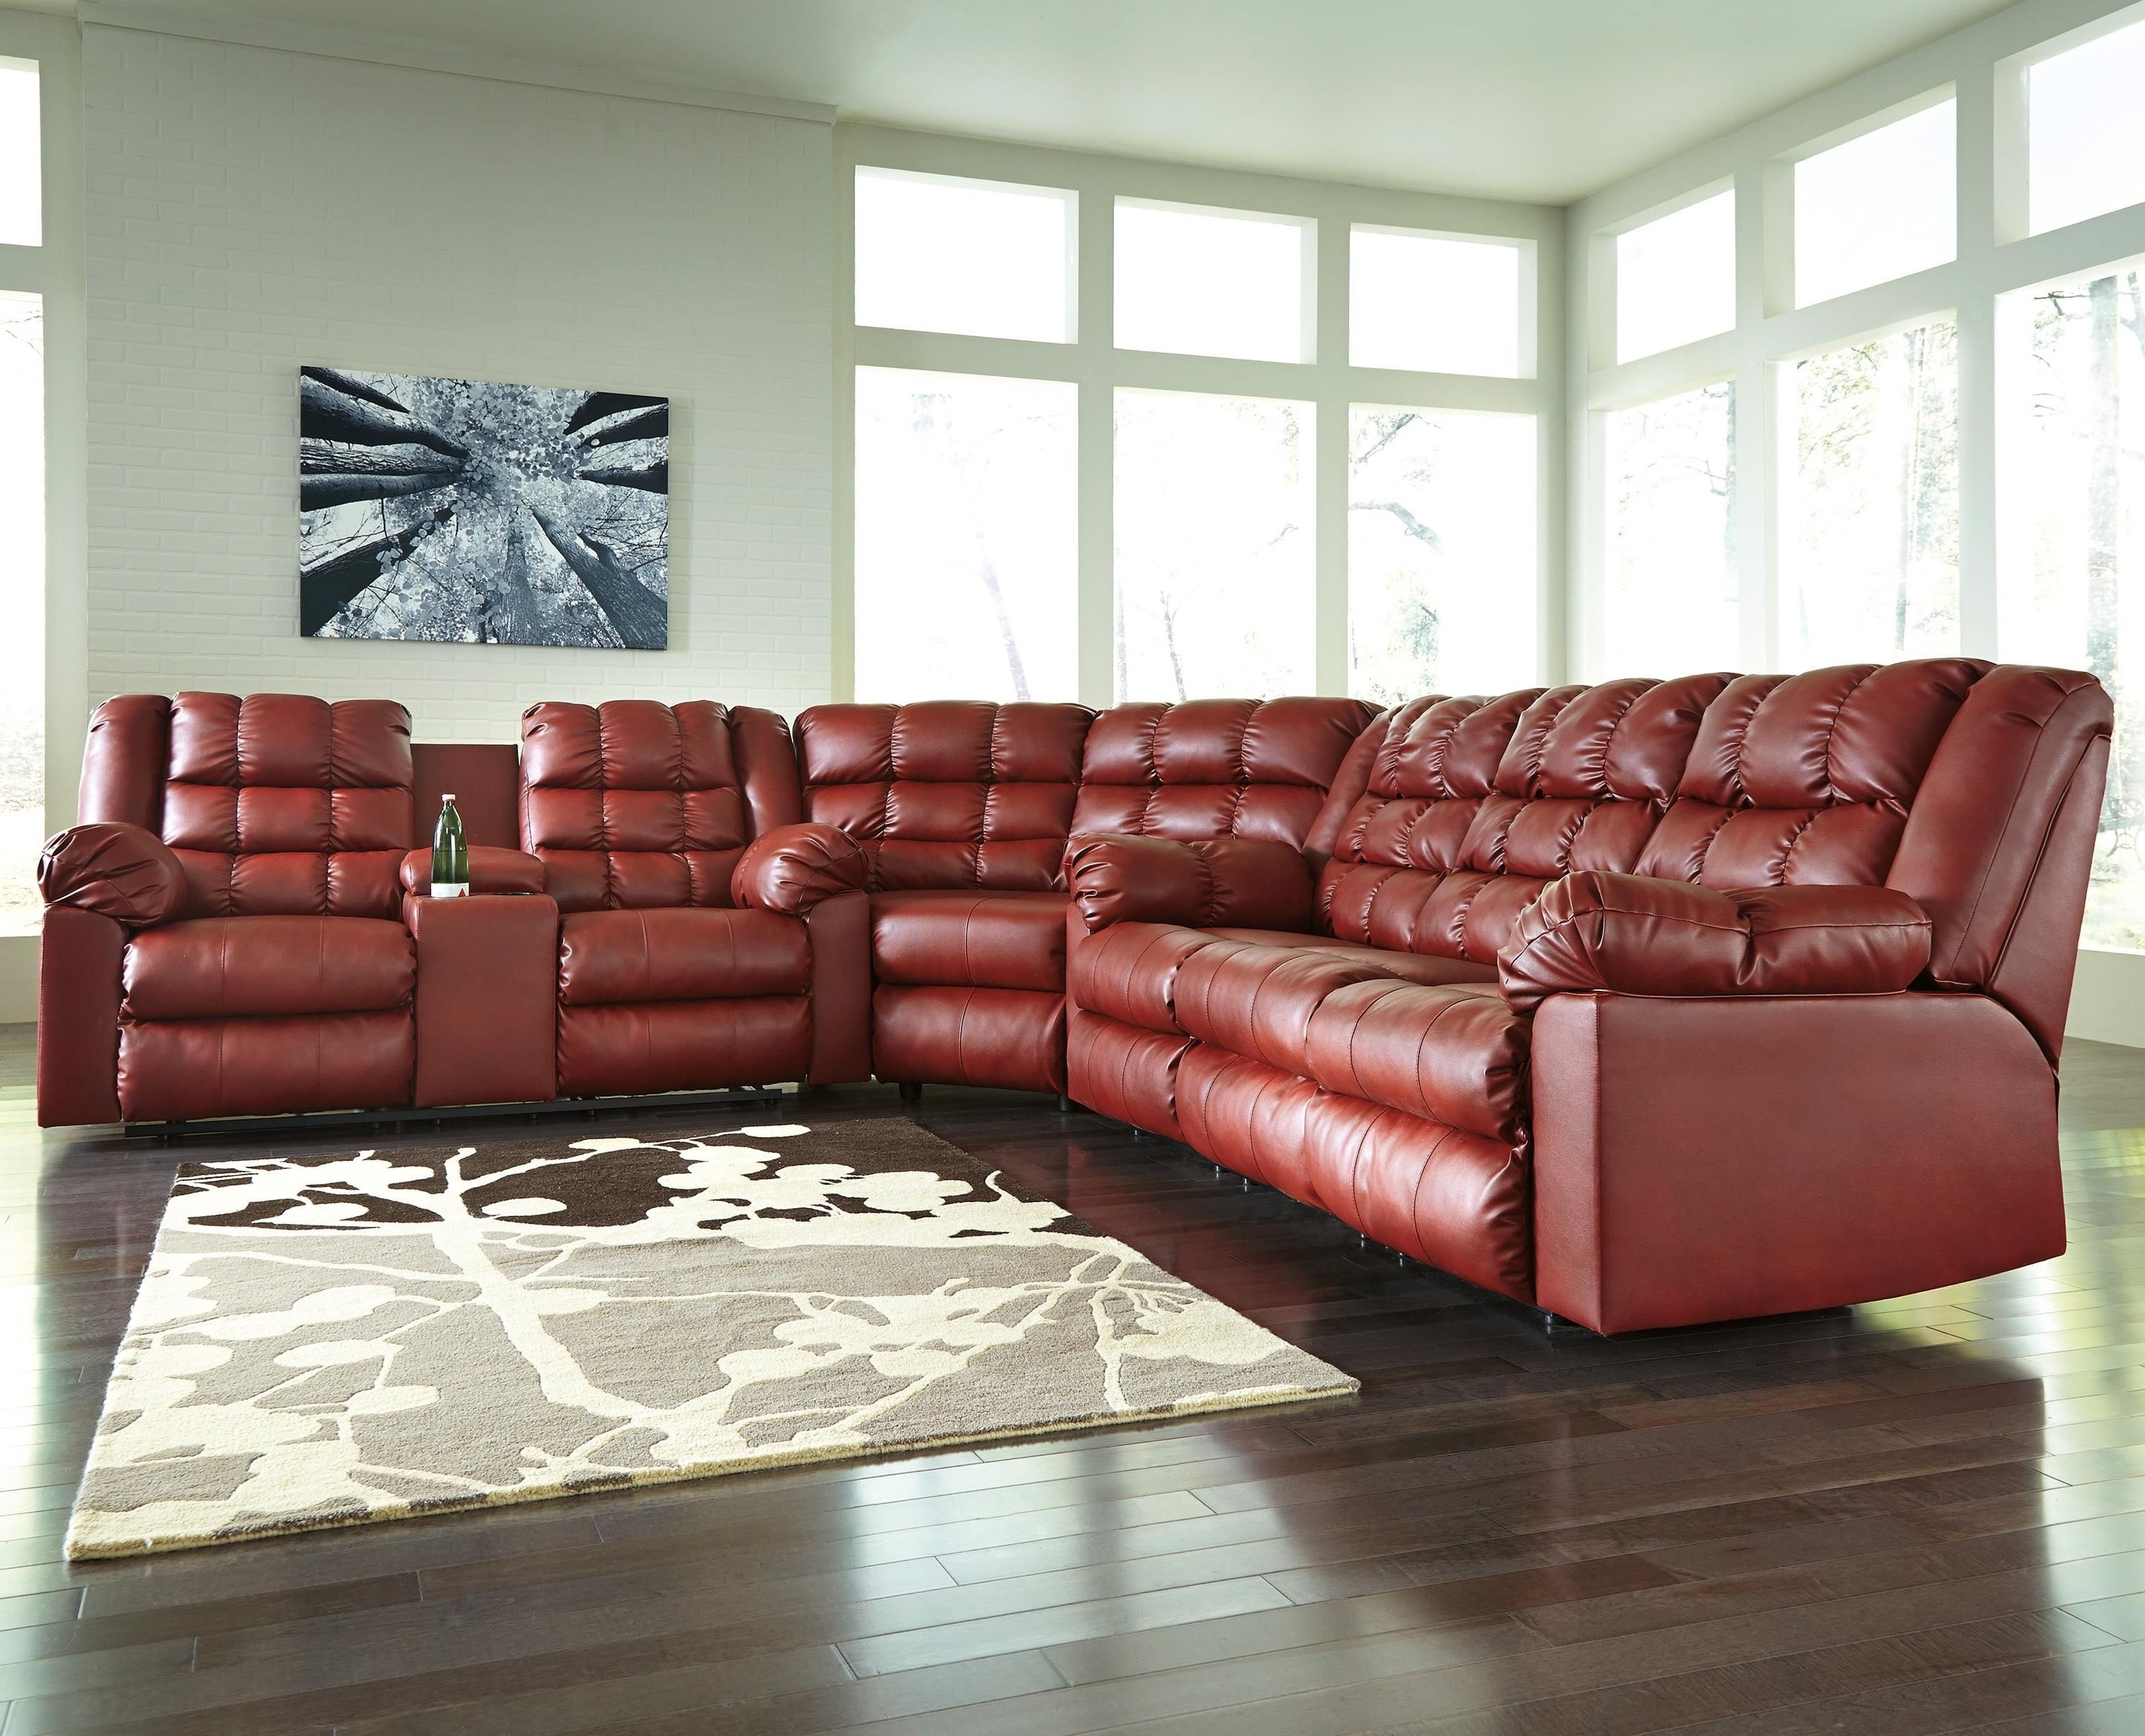 Best And Newest 102x102 Sectional Sofas With Regard To Brolayne Durablend® 3 Piece Reclining Sectionalsignature (View 19 of 20)